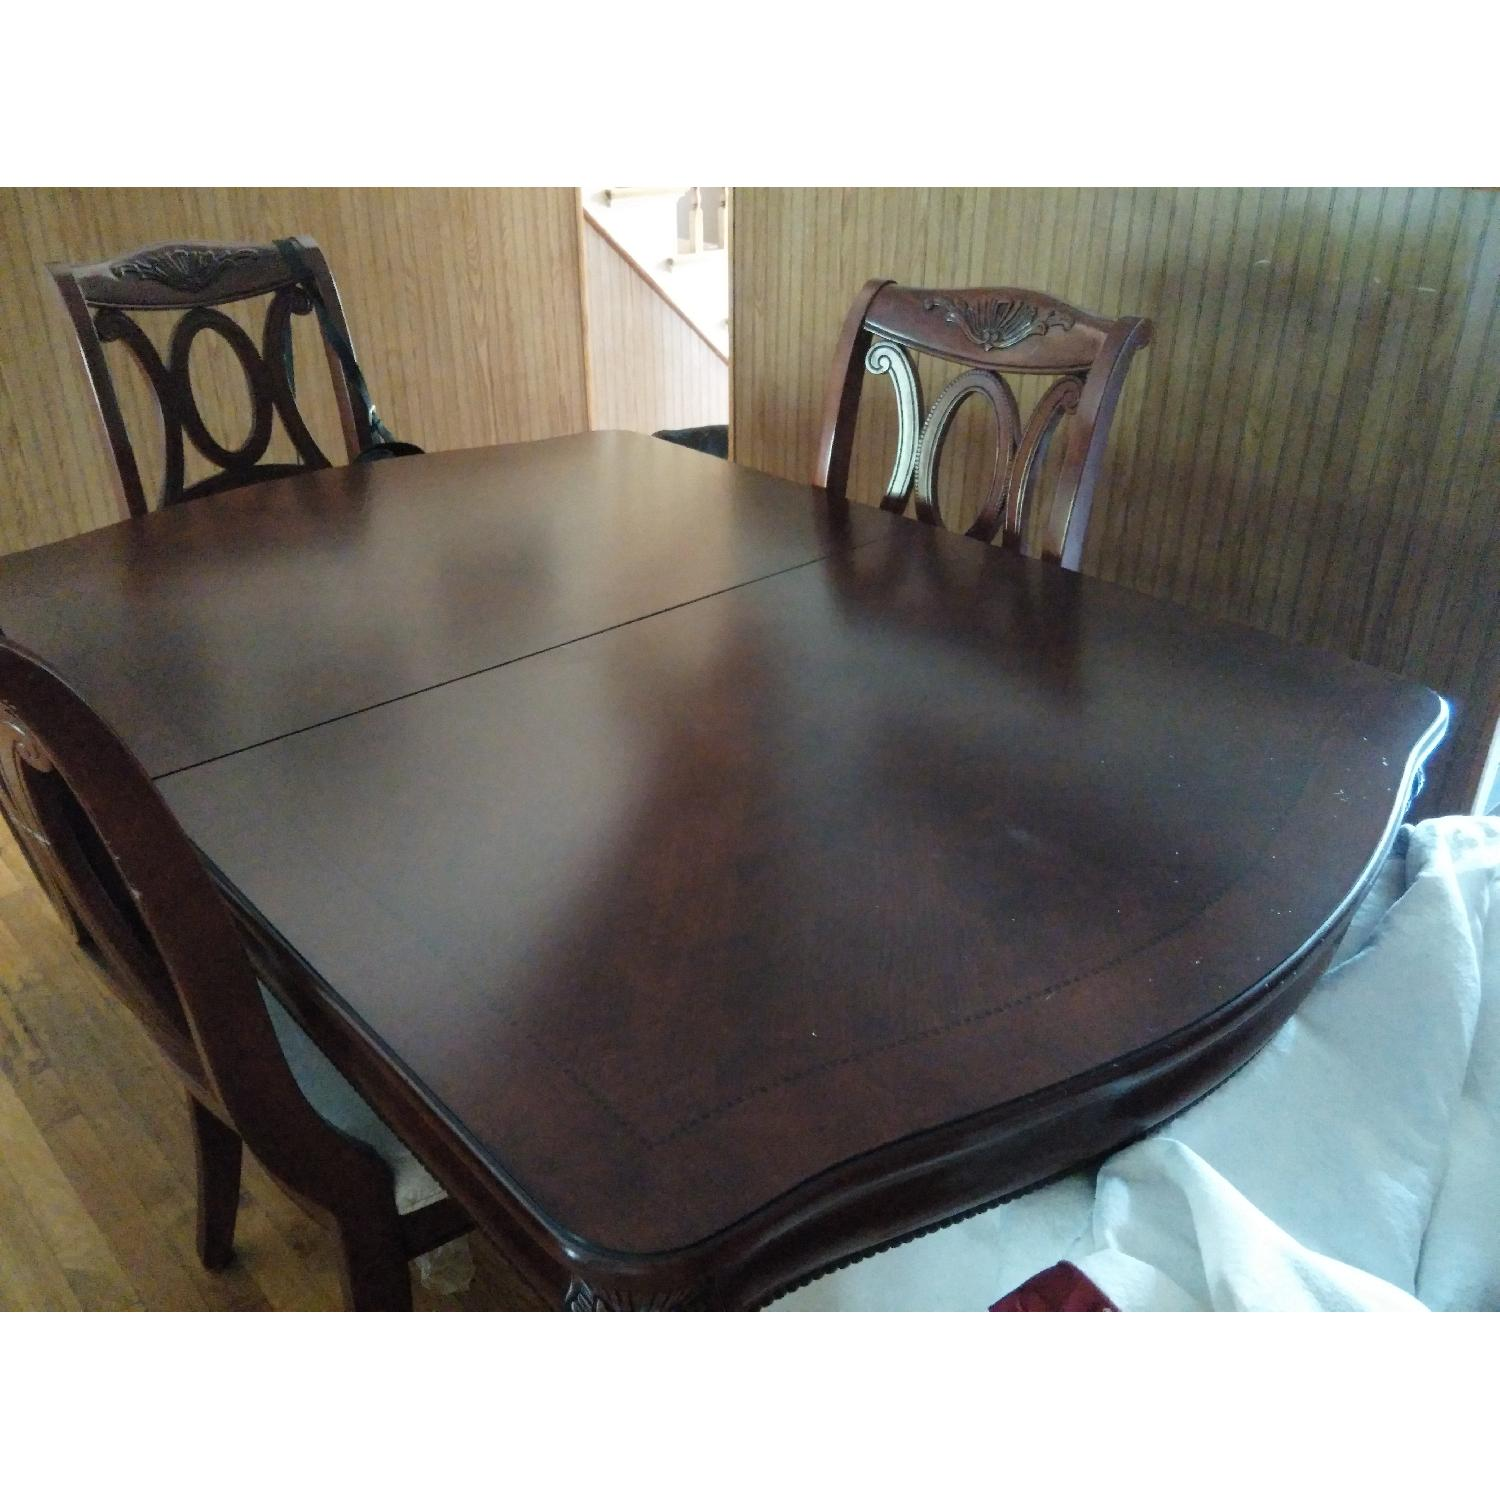 Fortunoff Cherry Wod Dining Table w/ 8 Chairs + China Buffet - image-4